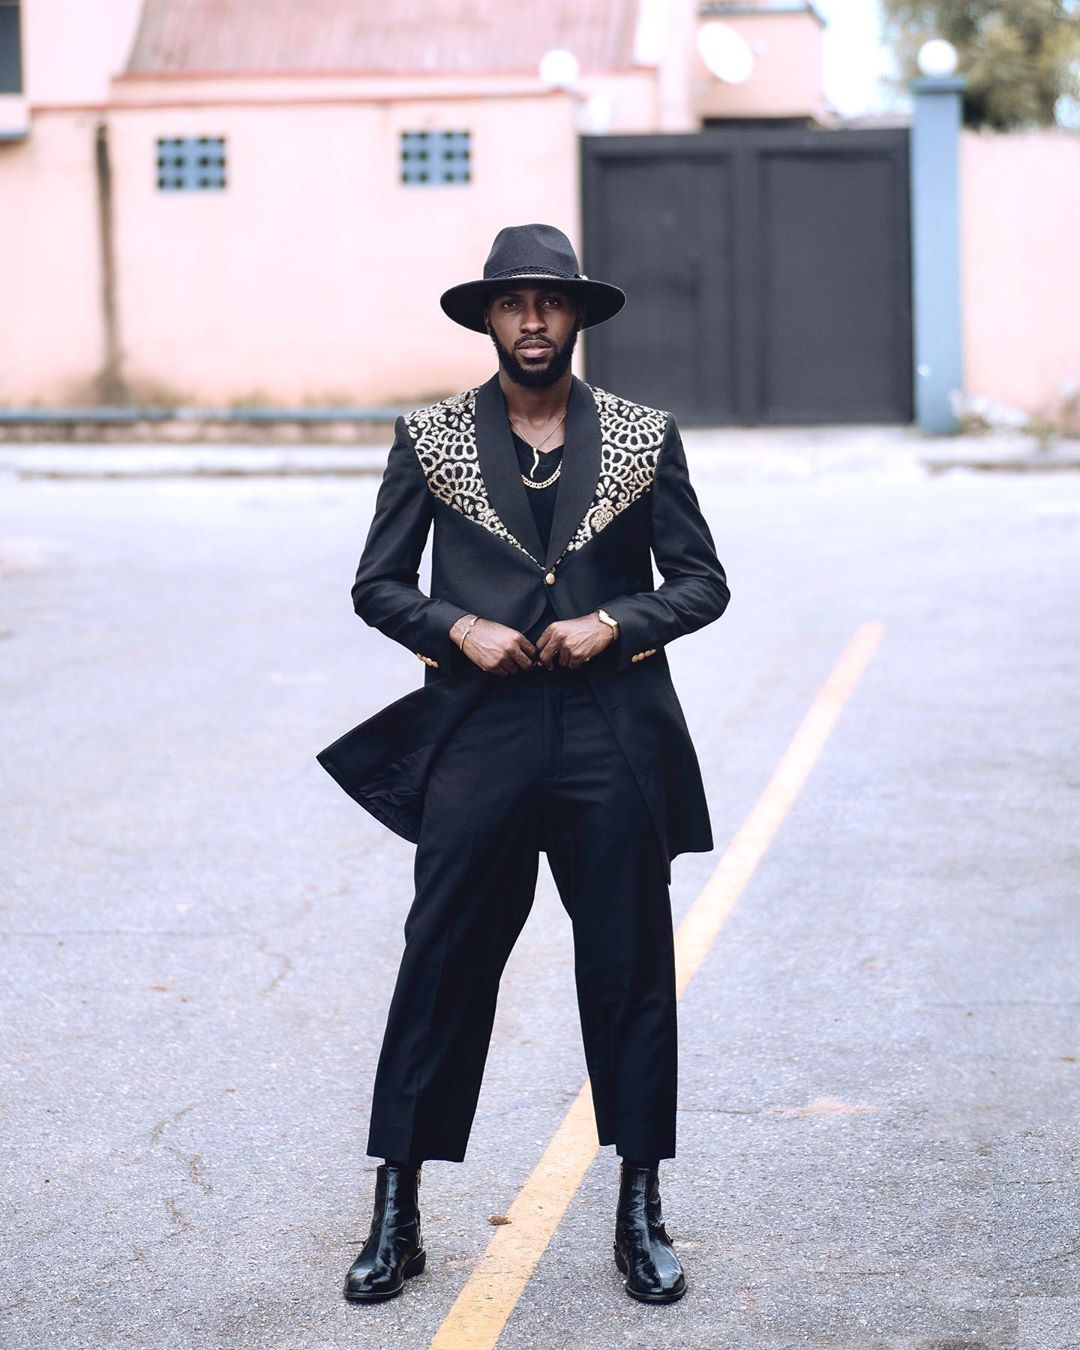 african-africa-male-celebrities-style-fashion-best-dresses-style-rave